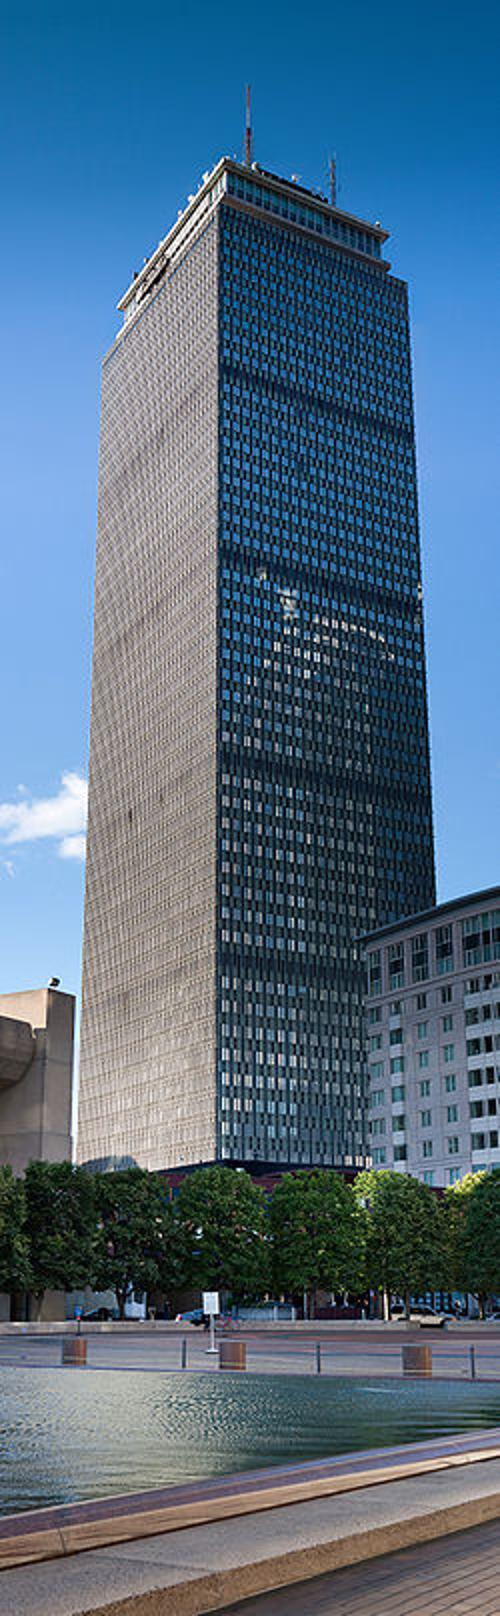 Prudential Tower Boston, Massachusetts in Ted